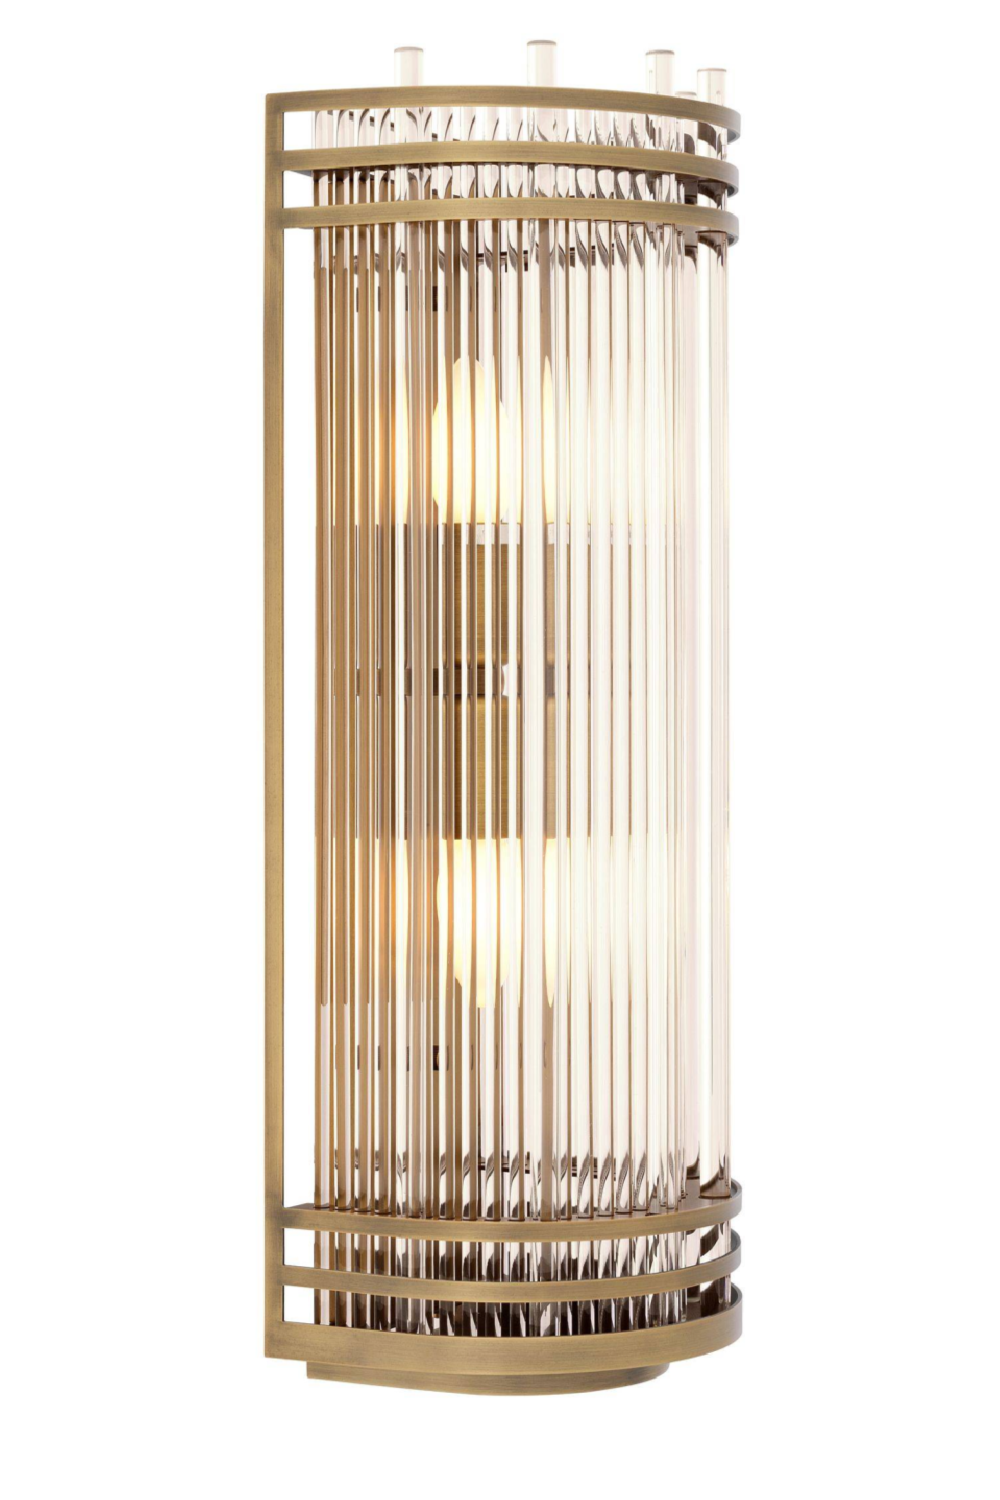 Antique Brass Glass Wall Lamp | Eichholtz Gulf L | OROA